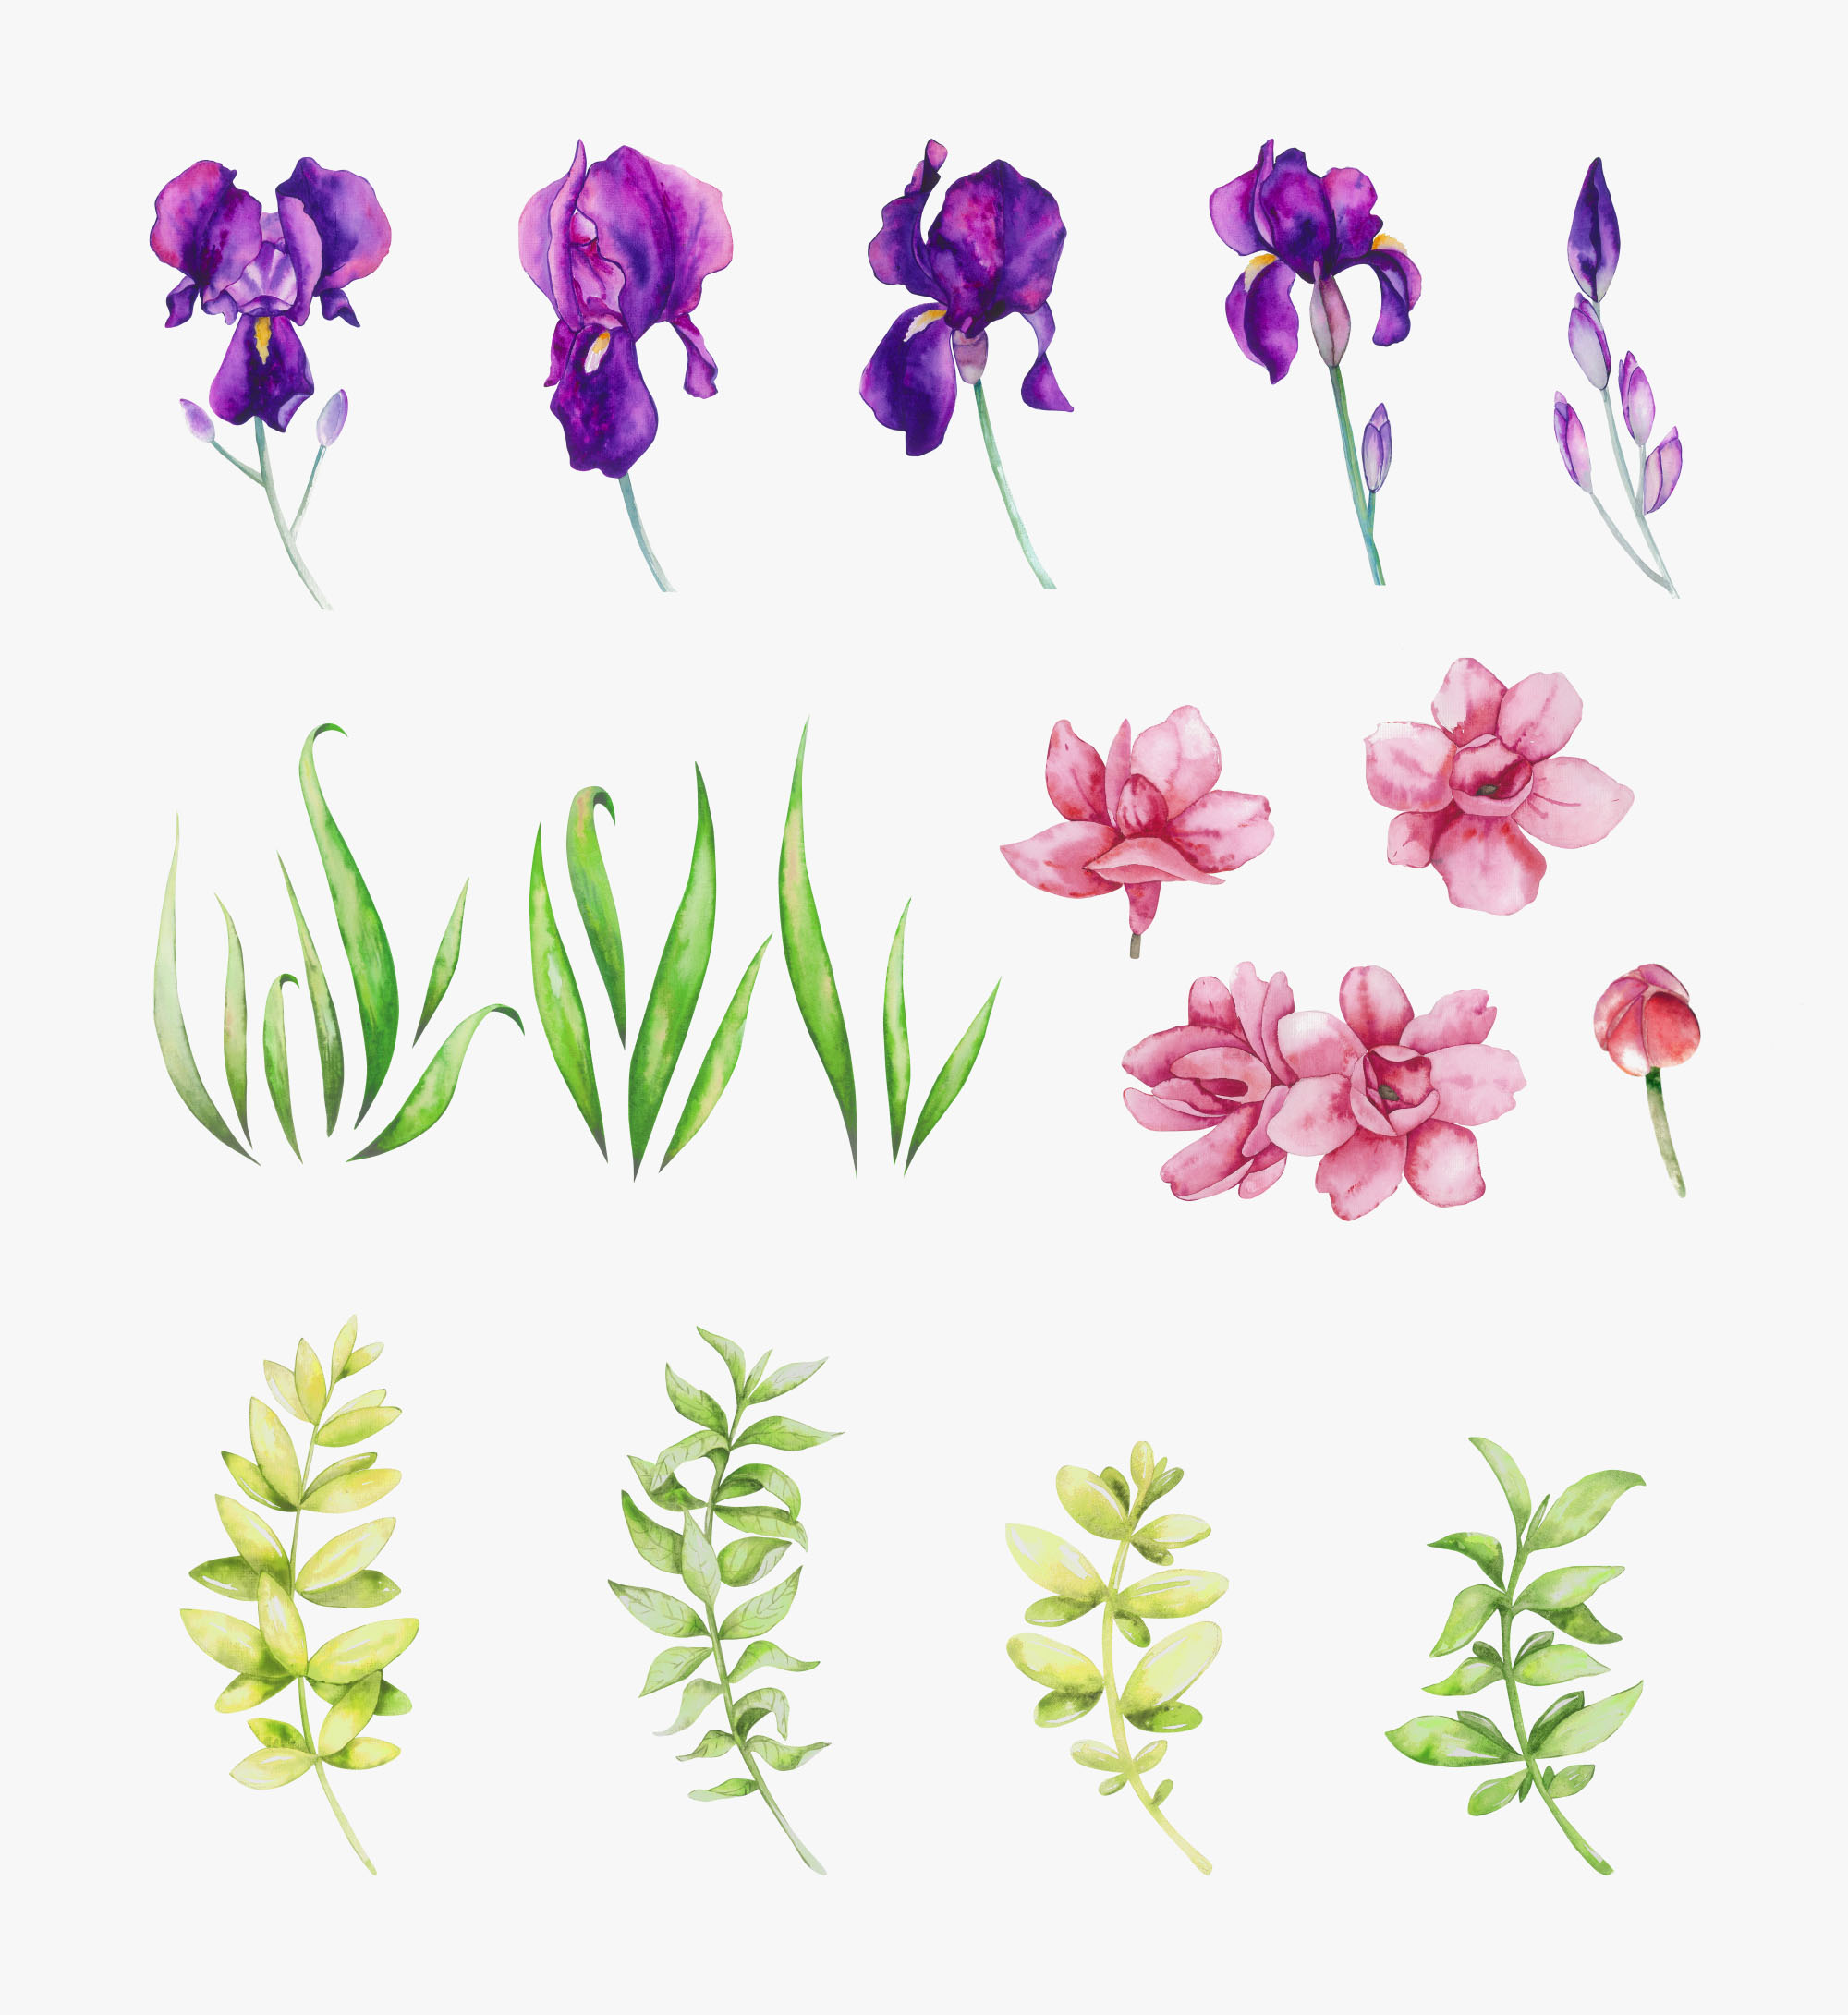 Iris Watercolor Floral Collection Elements